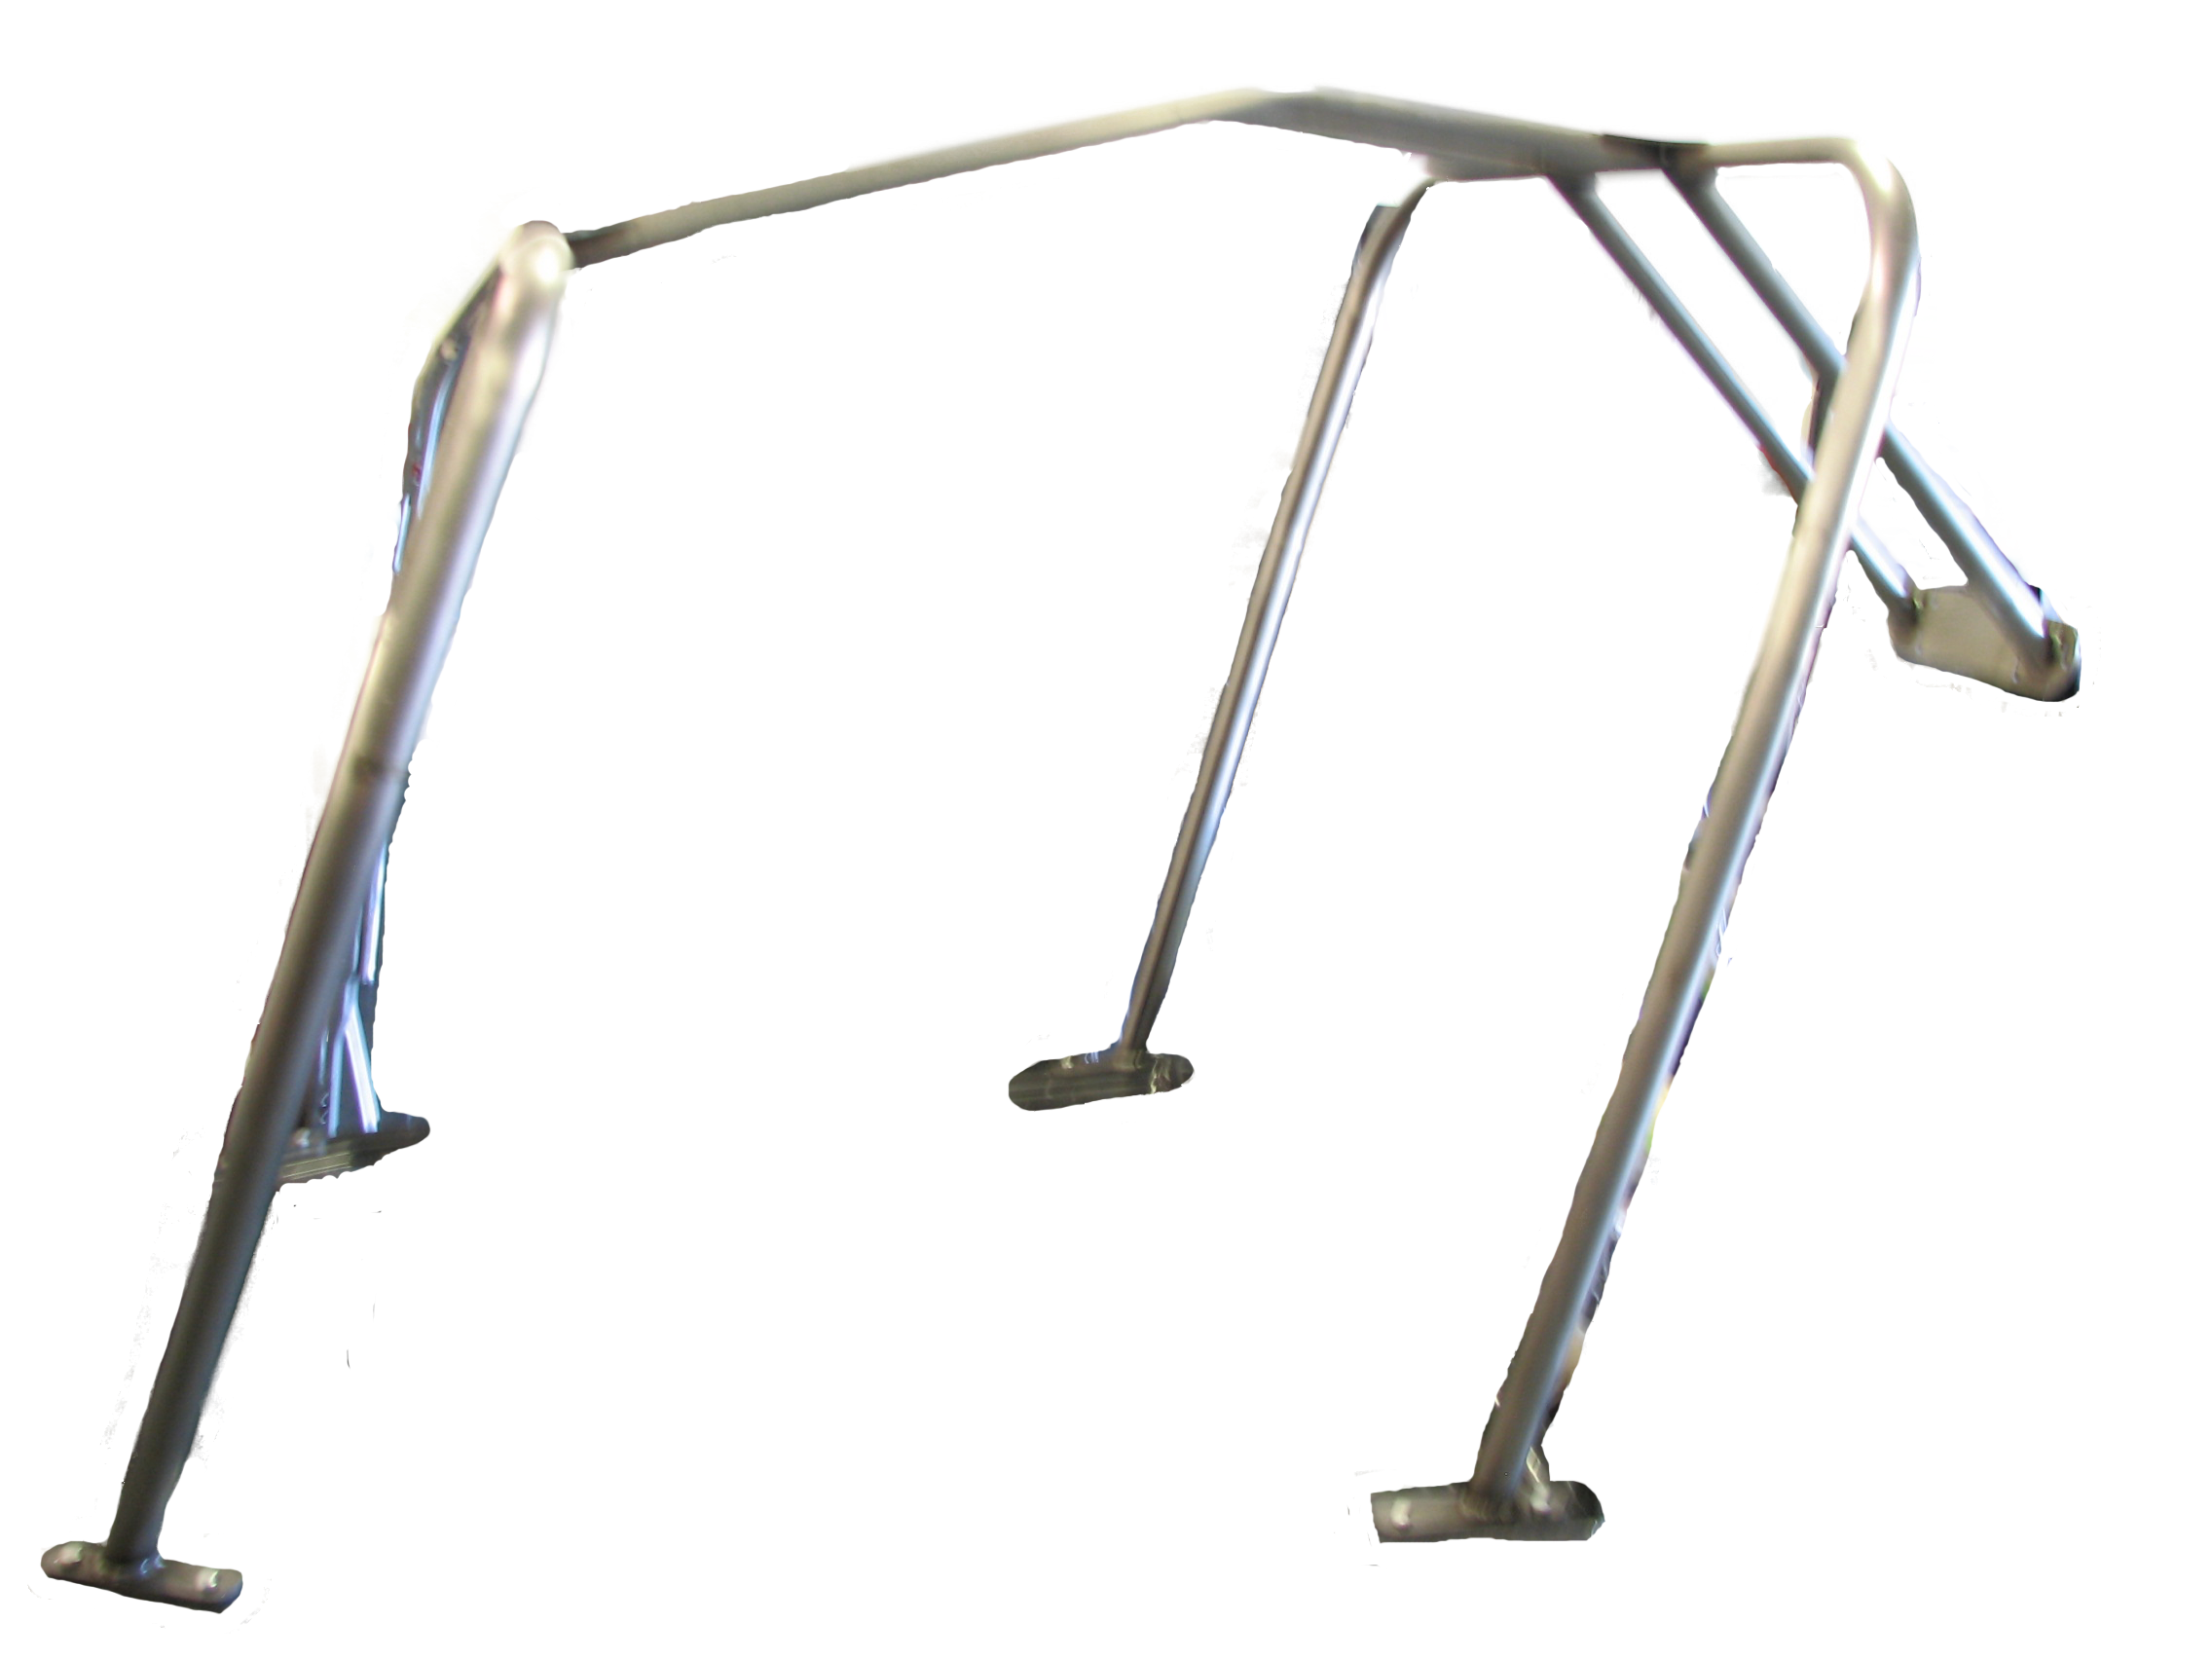 Roll Bars/Show Bars/Roll Bar Covers